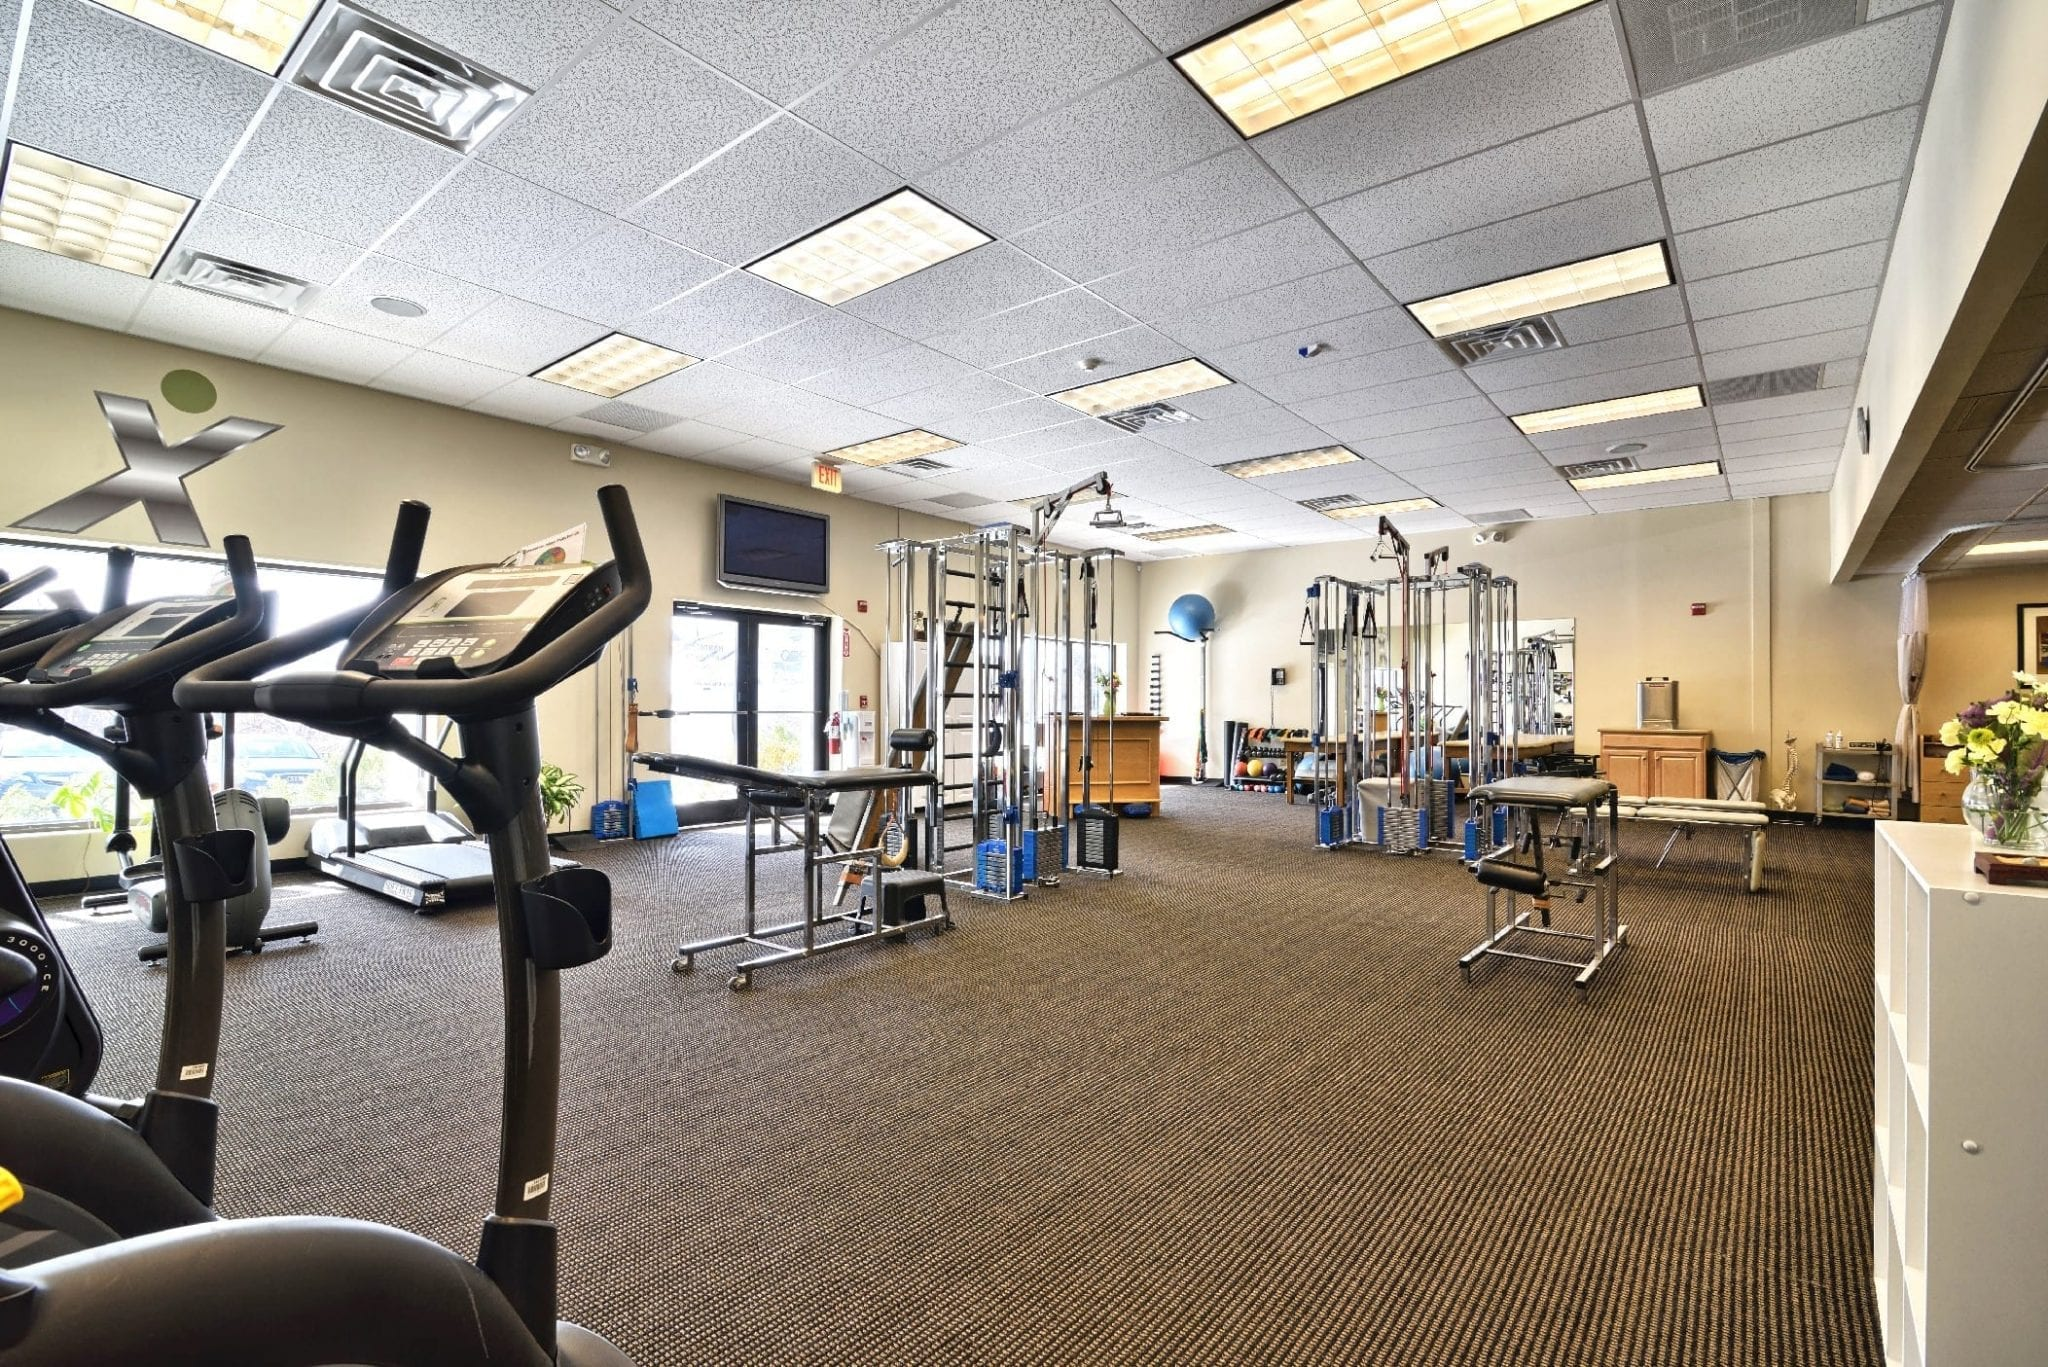 Interior of our Professional Physical Therapy clinic in Stratham, NH.